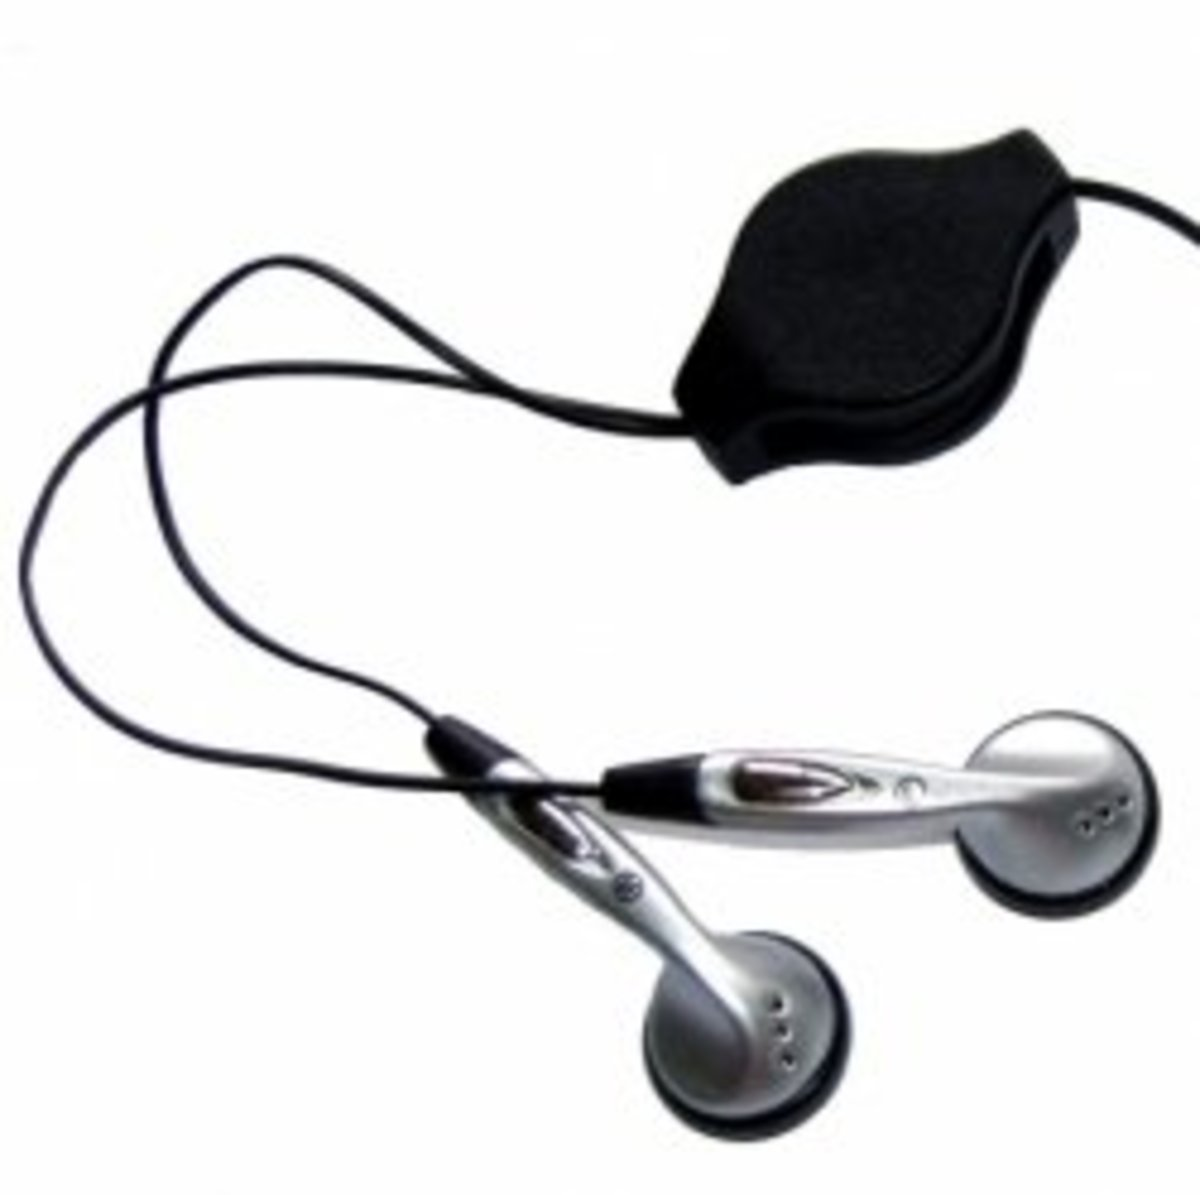 Headphones and Earbuds for People with Unilateral Hearing Loss